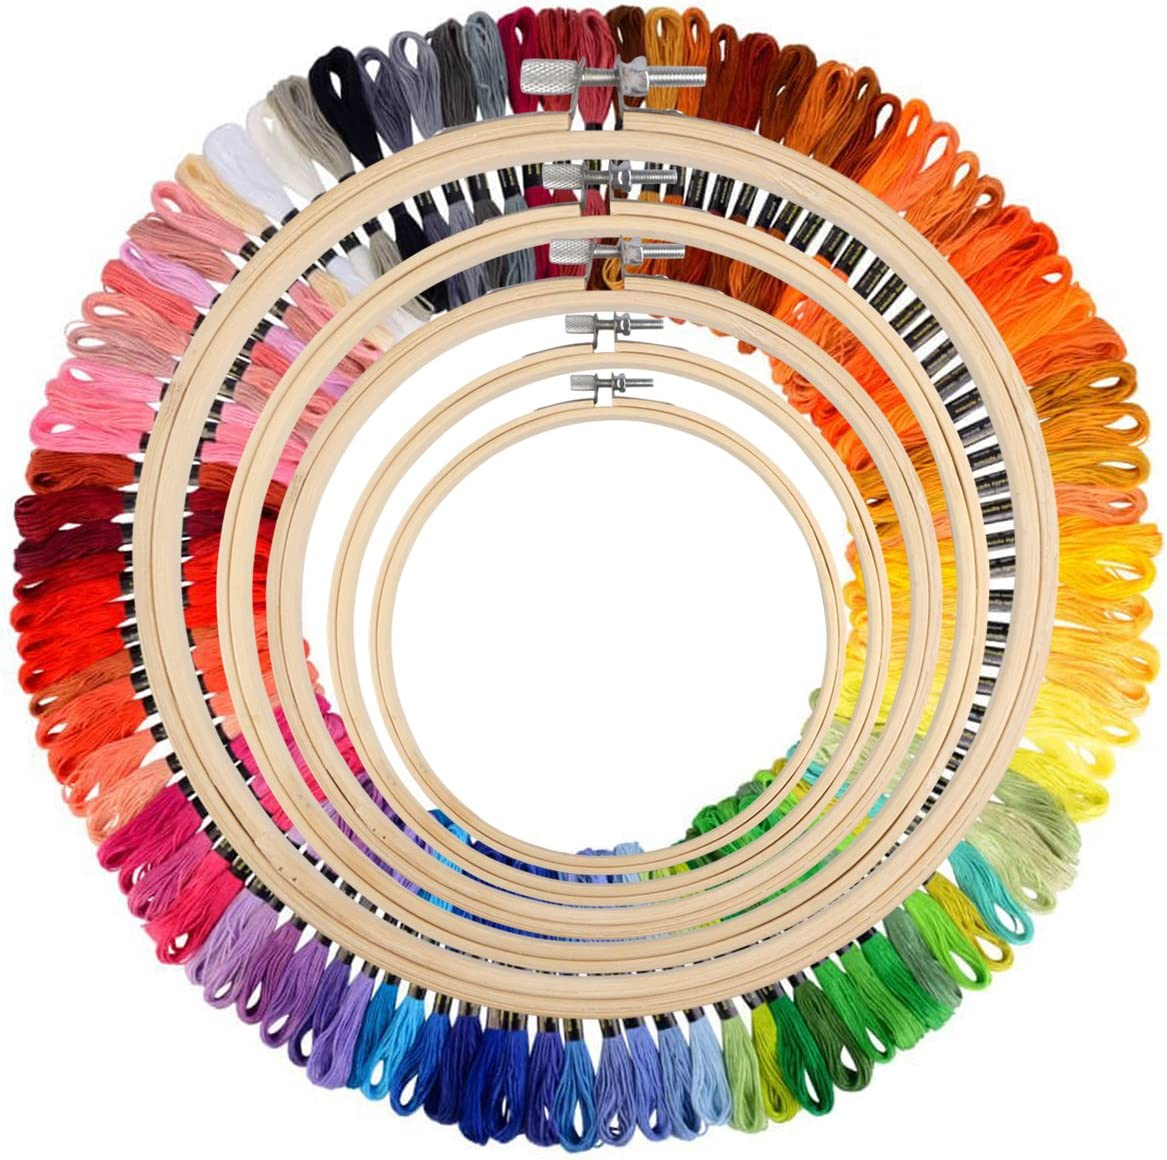 Full Range of Embroidery Starter Kit Cross Stitch Tool Kit Including 5 PCS Bamboo Embroidery Hoop 100 Color Threads 2 PCS Classic Reserve Aida and Tool Kit